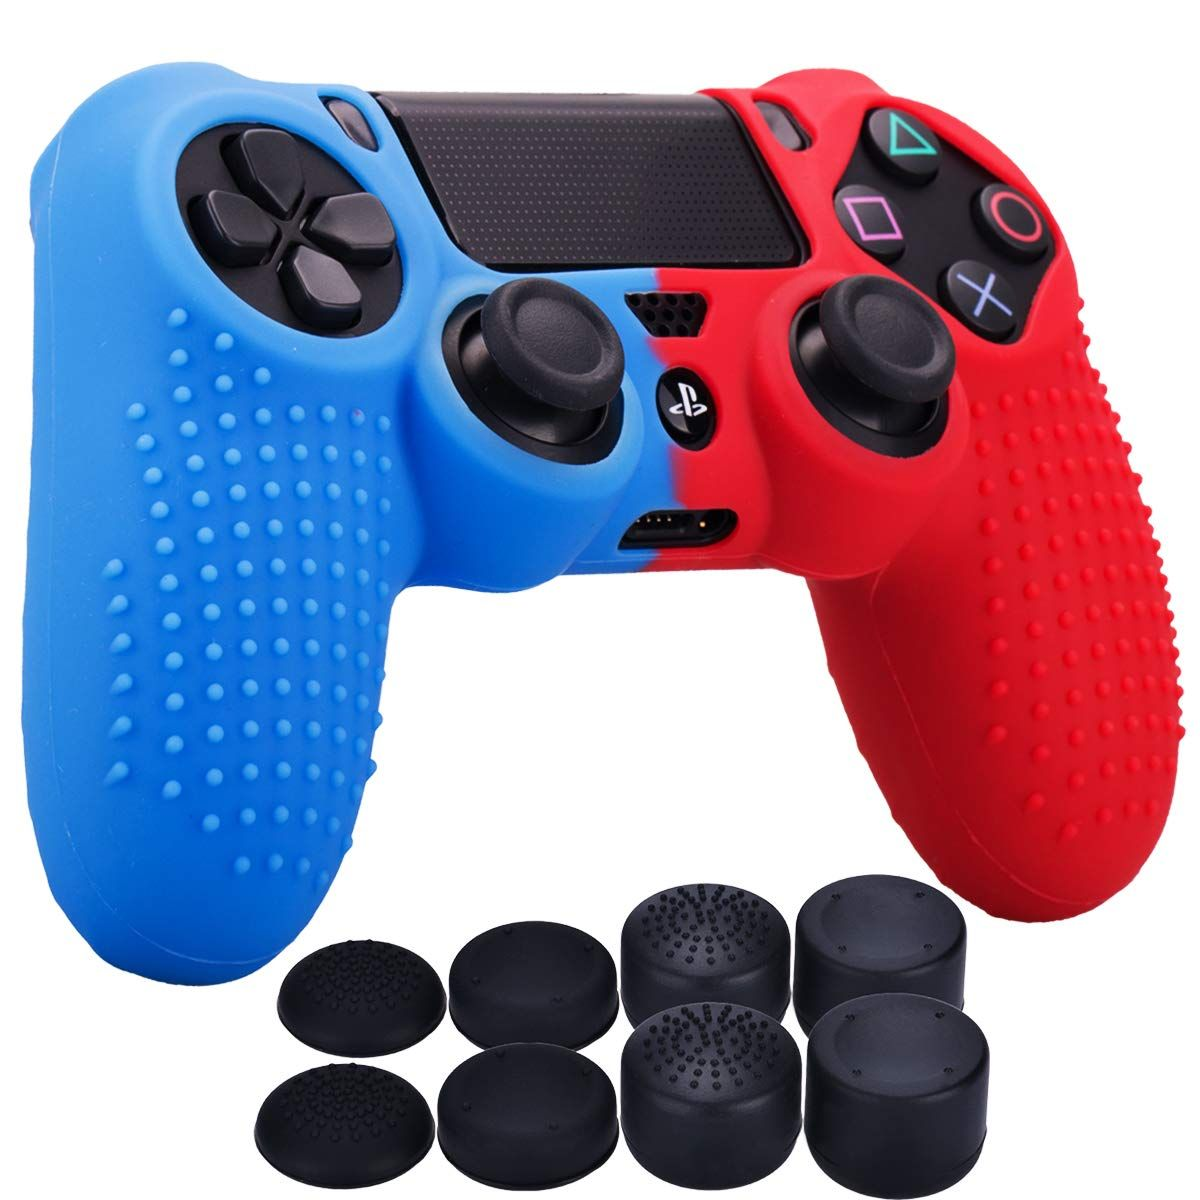 Yorha Studded Dots Silicone Rubber Gel Customizing Cover For Sony Ps4 Slim Pro Dualshock 4 Controller X 1 Red Dualshock Ps4 Slim Silicone Rubber